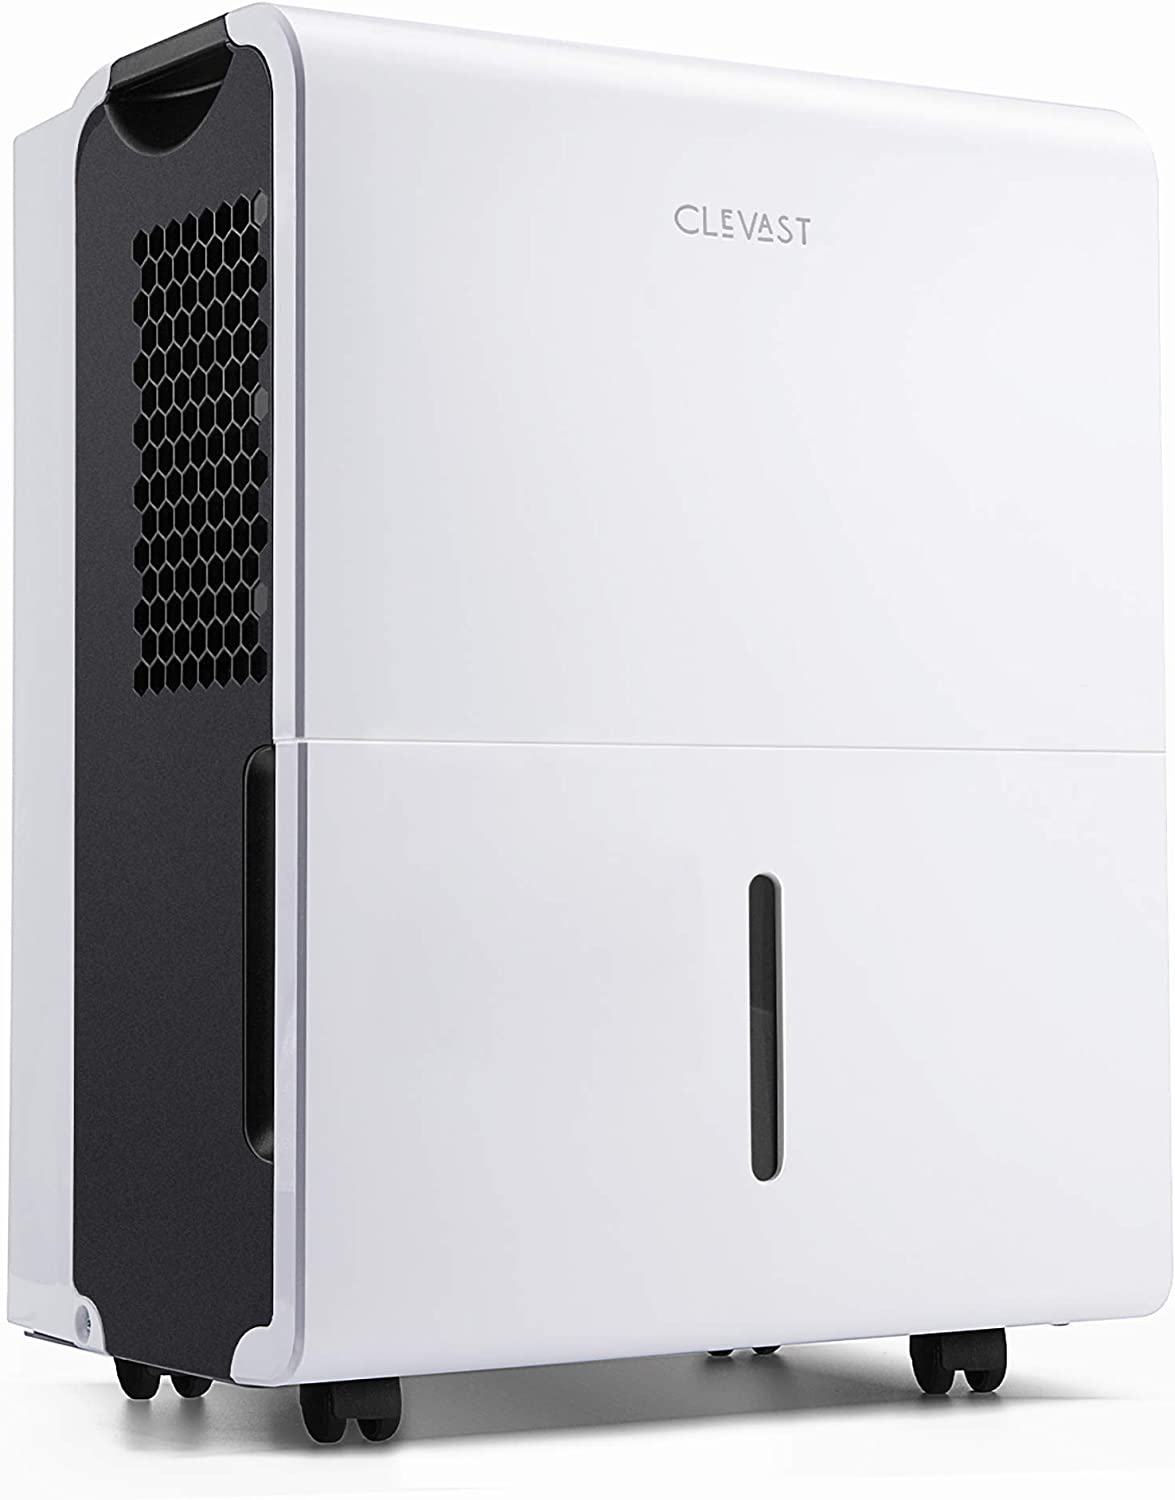 CLEVAST 1,500 Sq. Ft Energy Star Dehumidifier Review